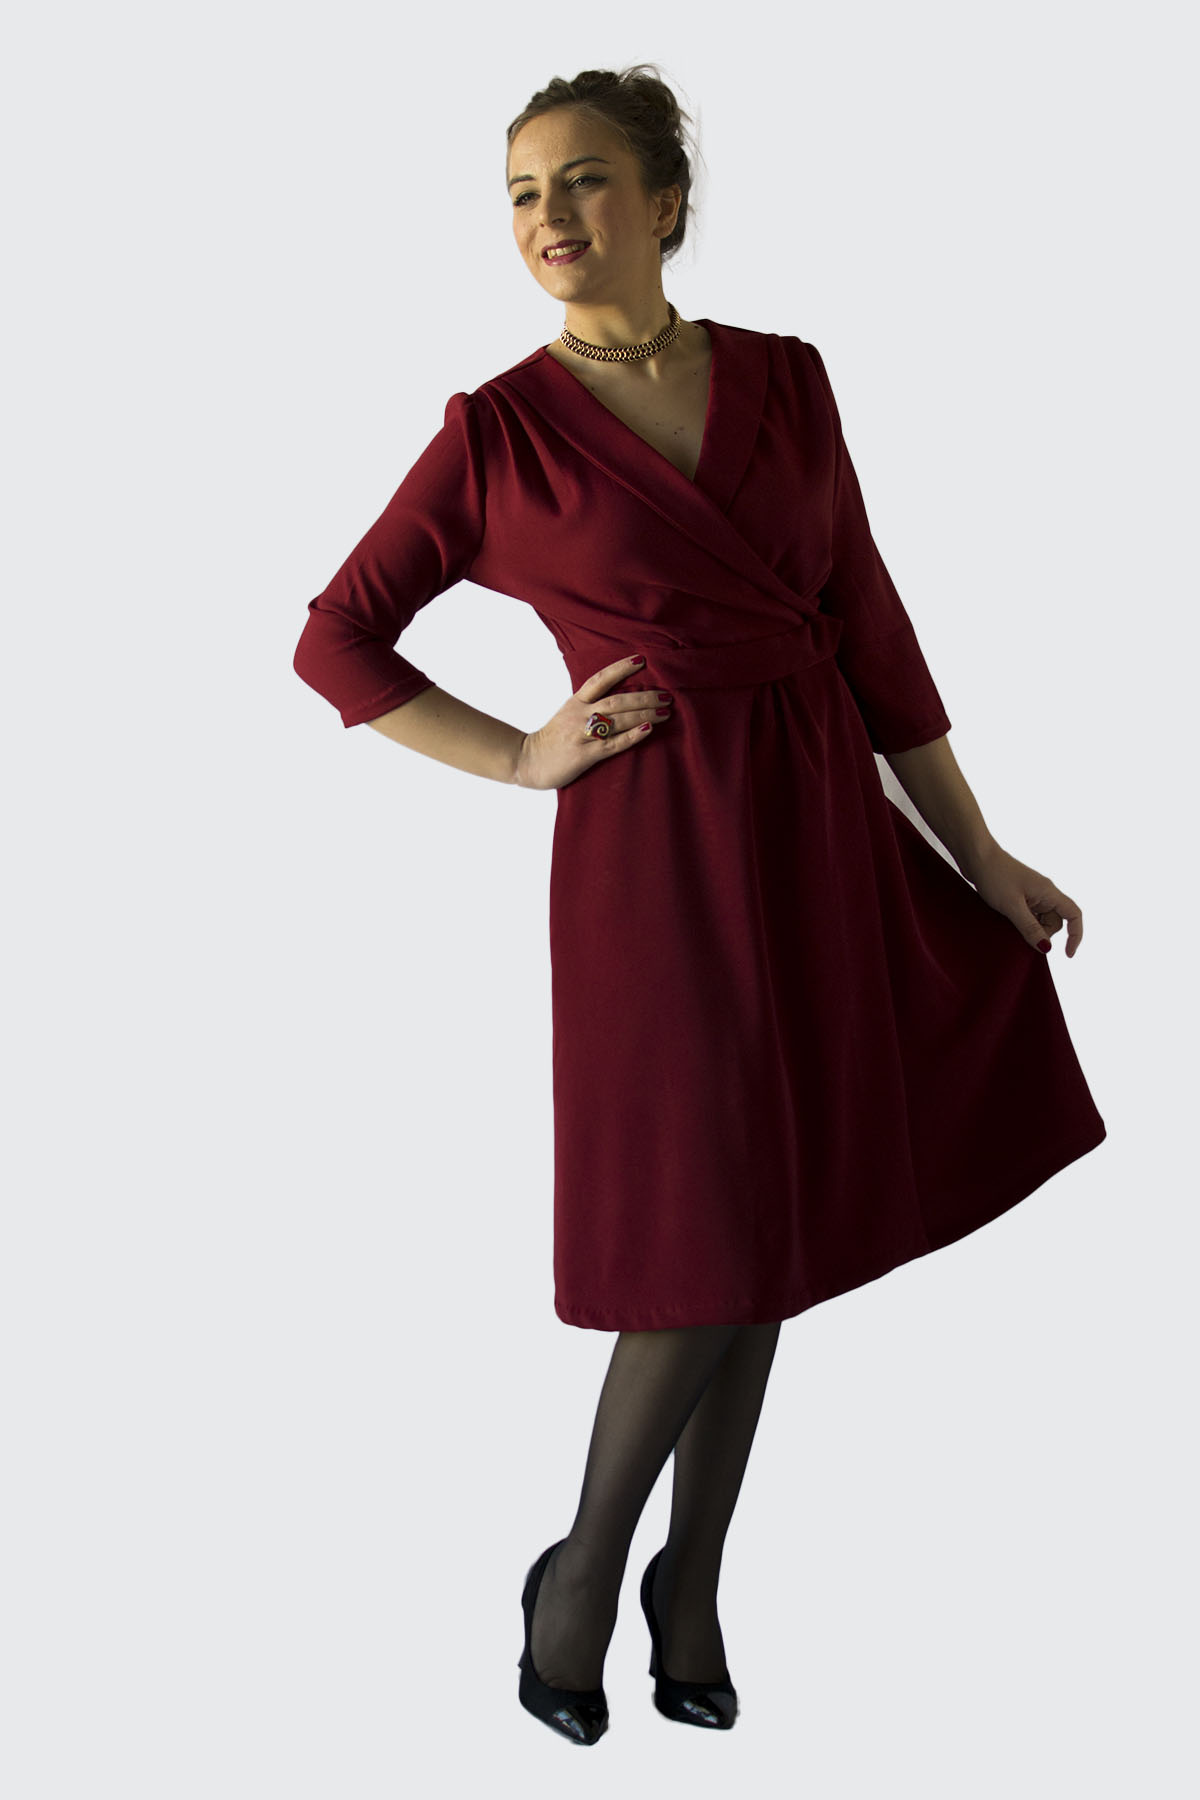 Making the 1940s wrap dress by Sew Over It